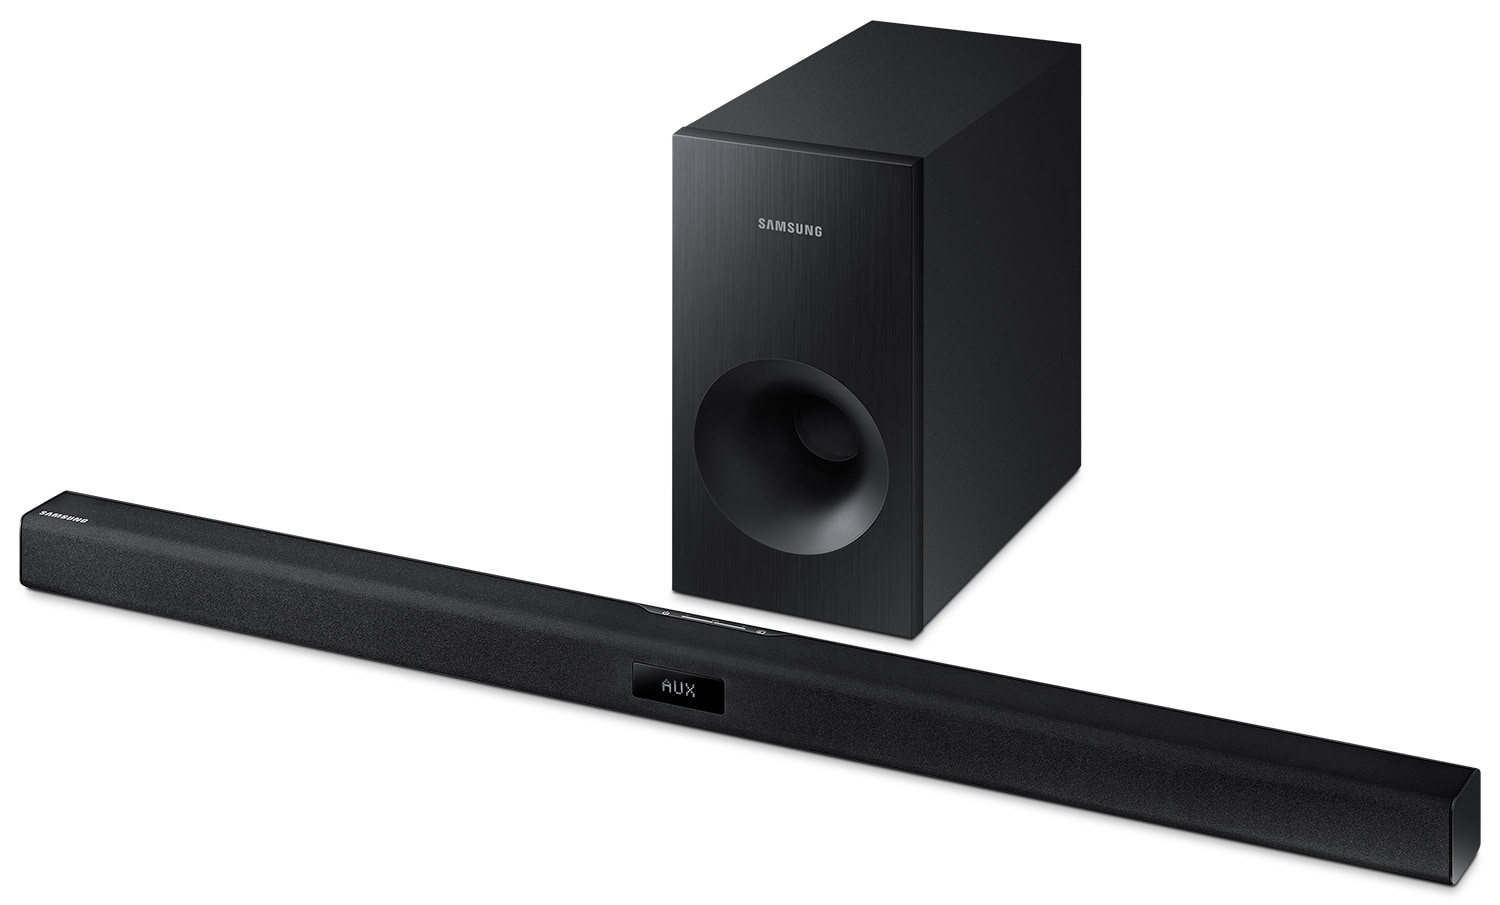 Buy Jbl Cinema Sb400 120w Wireless Soundbar Subwoofer Australia Boston Acoustics Tvee 26 Hwj355sb Hwj355zc